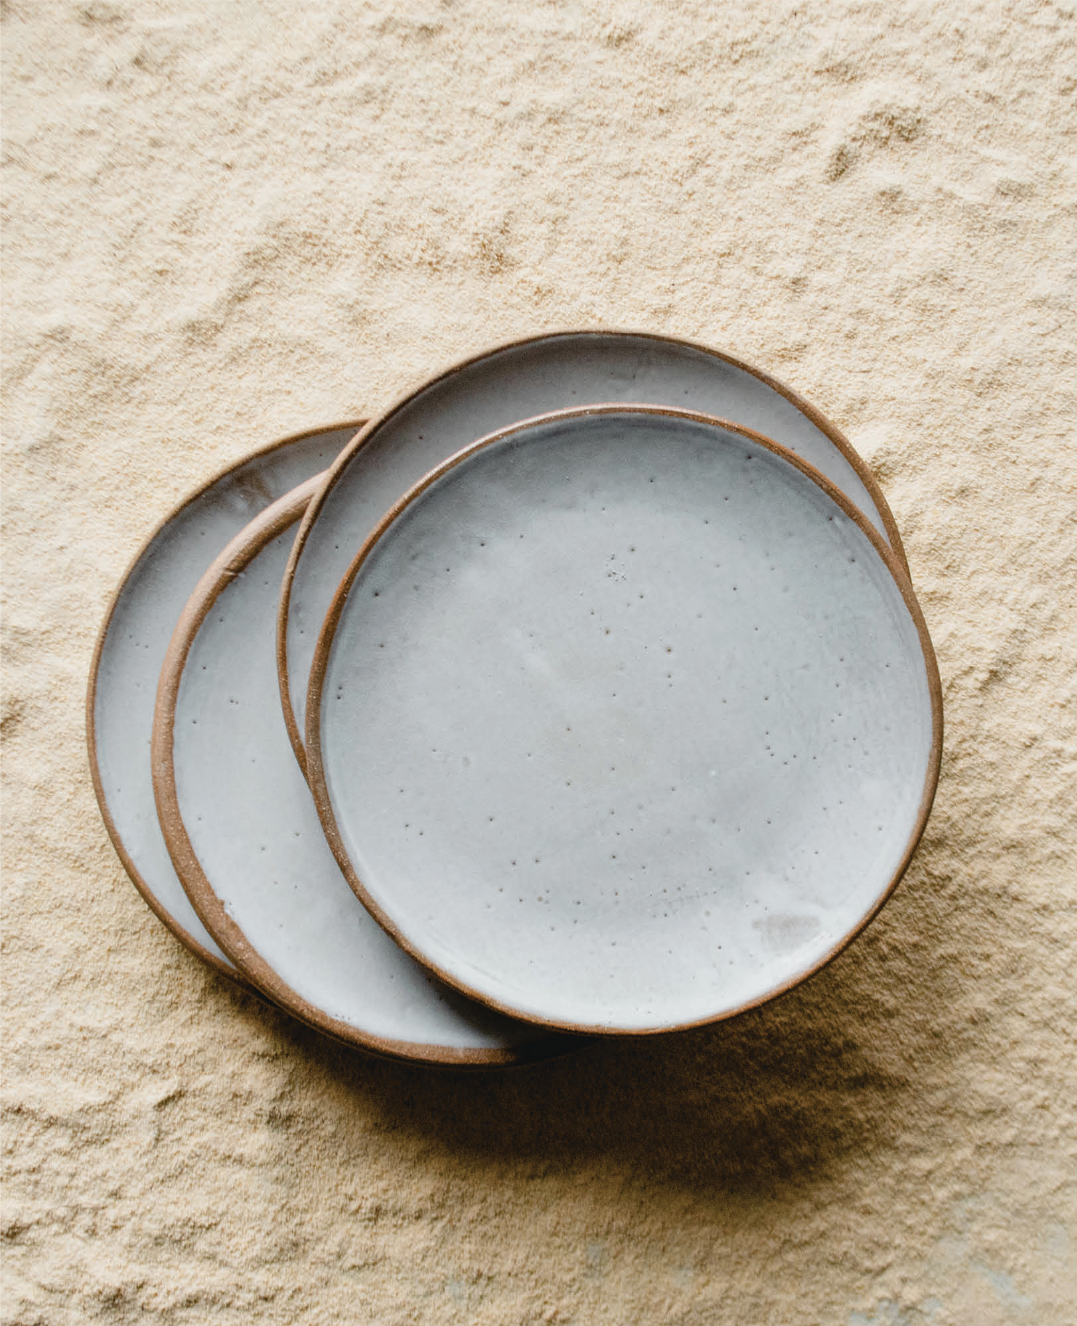 The Power of Community - With every purchase, Firstborn Ceramics will donate a portion of its sales to Win NYC. For more than 30 years, Win has provided safe housing, critical services, and ground-breaking programs to help homeless women and their children rebuild their lives and break the cycle of homelessness.